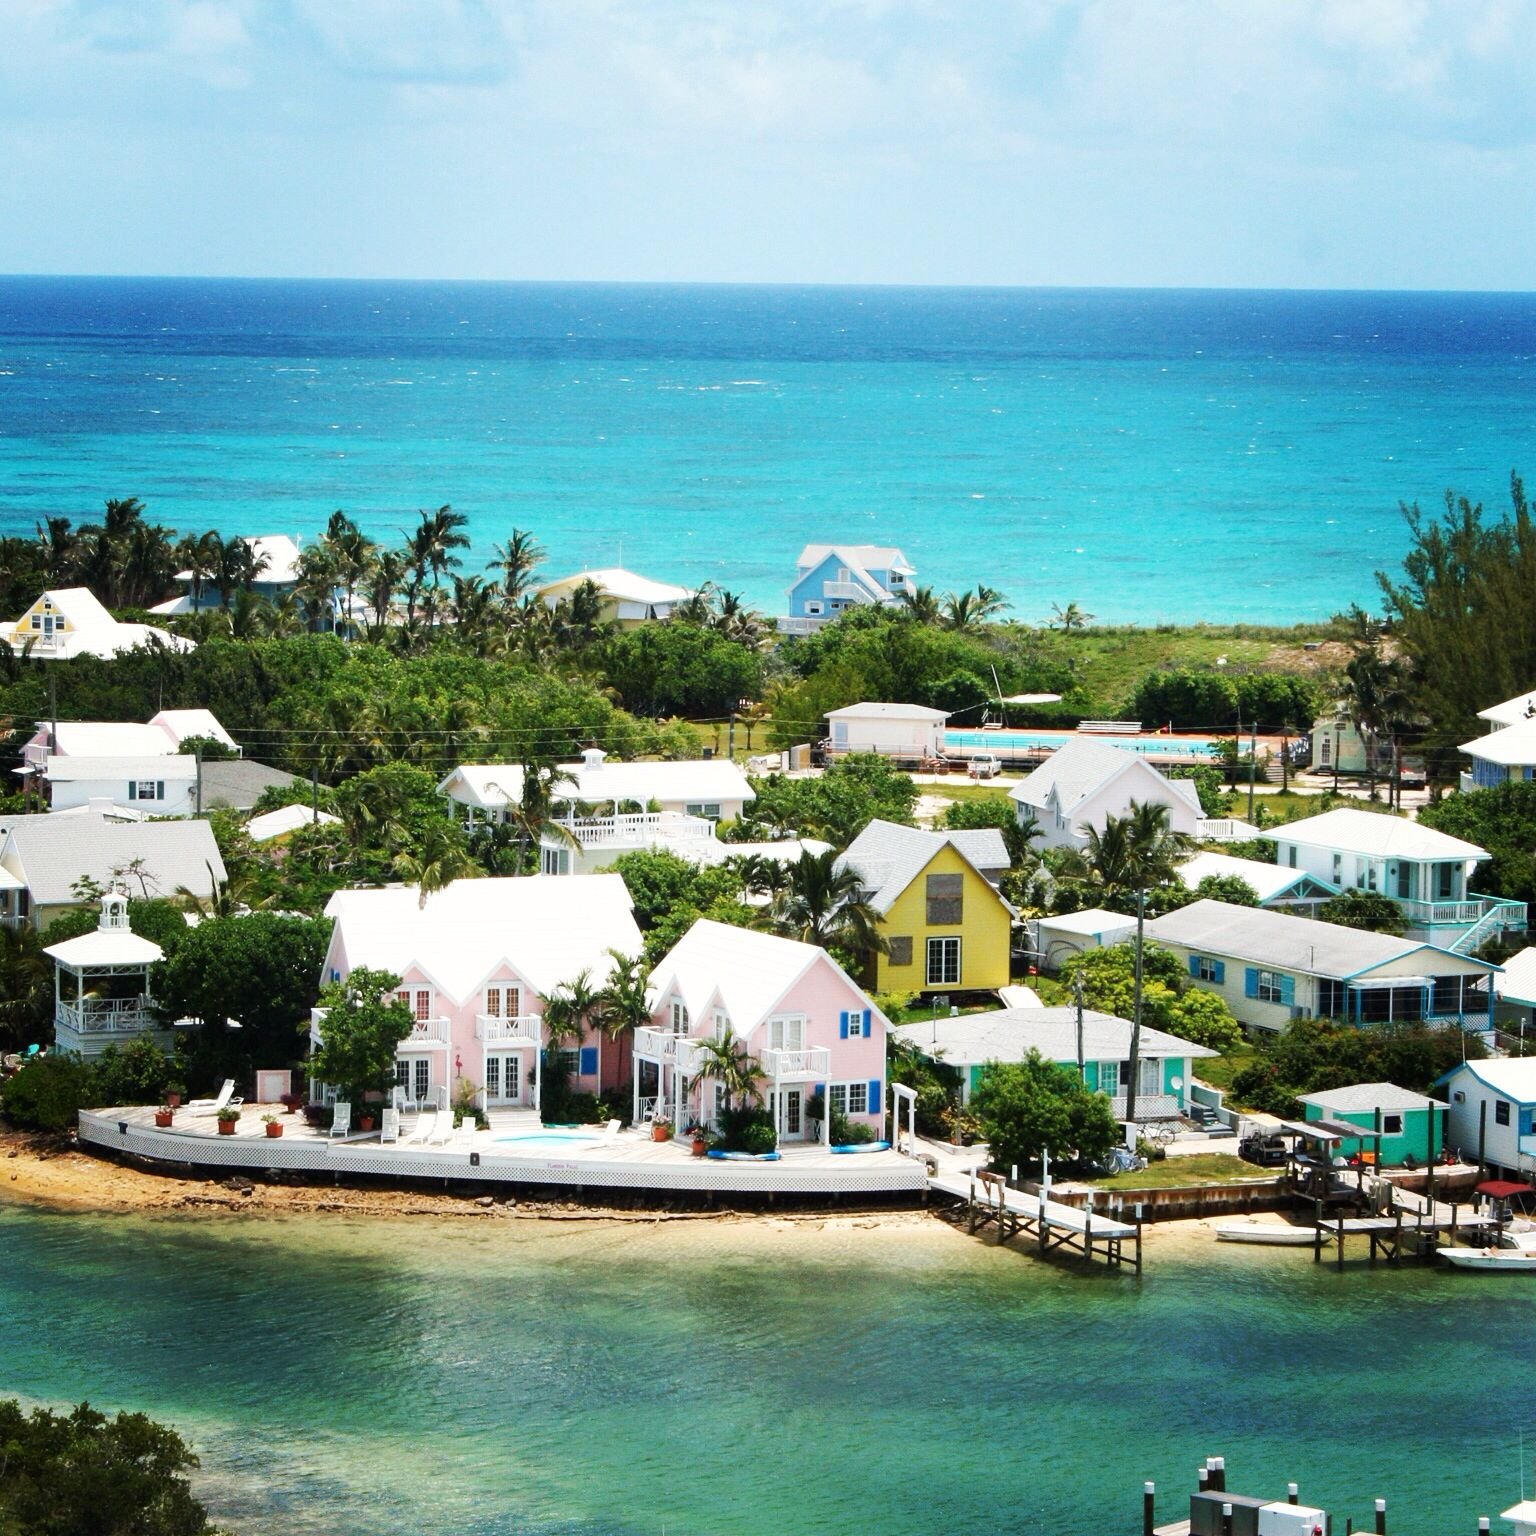 House rentals green turtle cay - Green Turtle Cay Bahamas